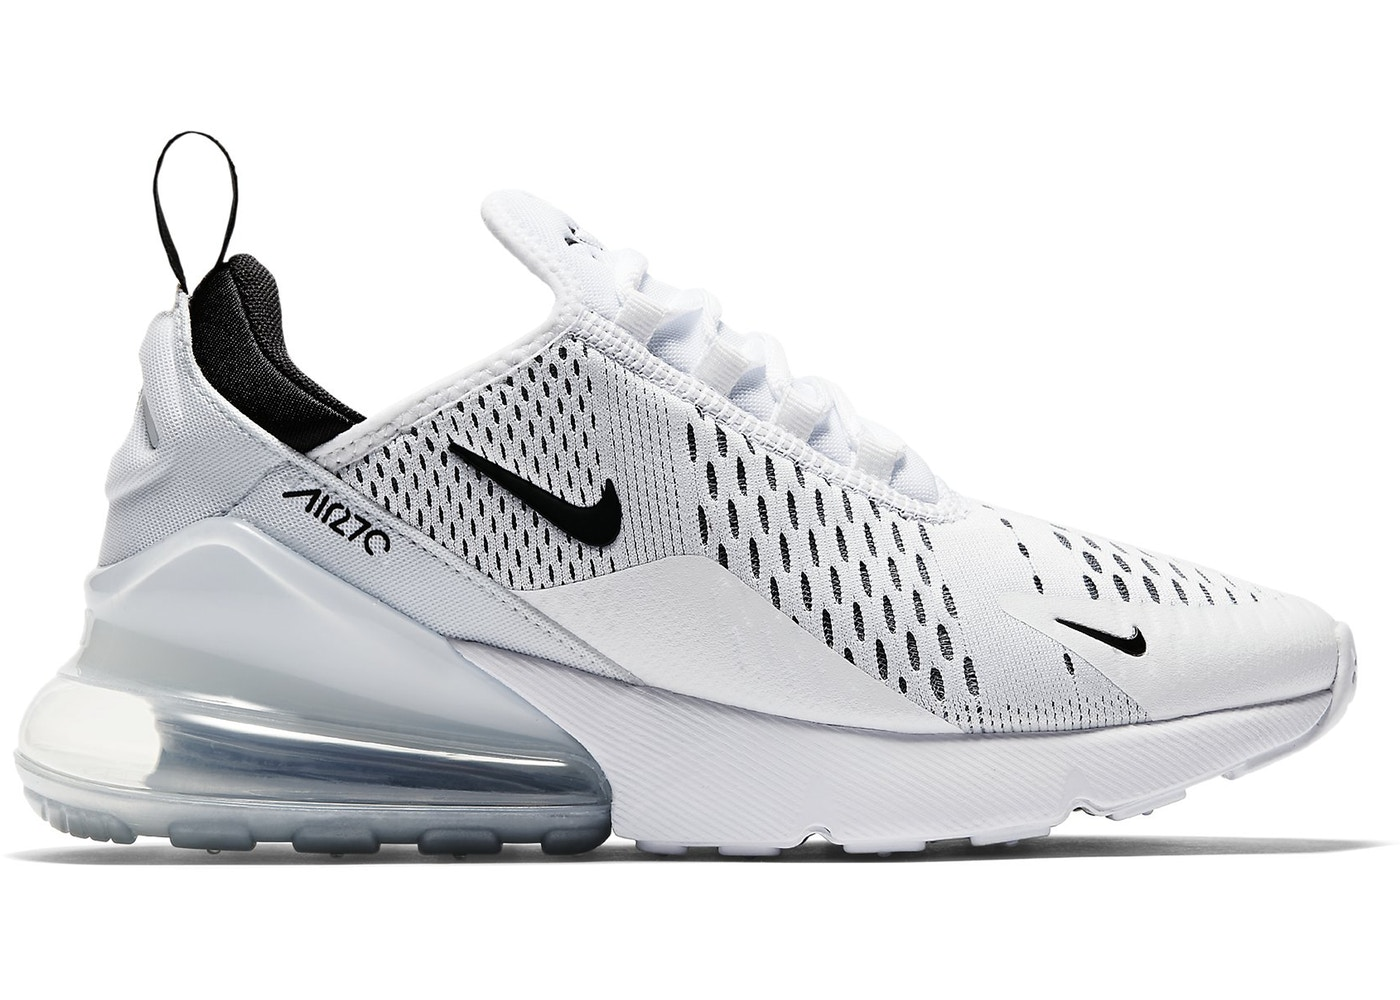 innovative design ba4f8 34874 Air Max 270 White Black (W)